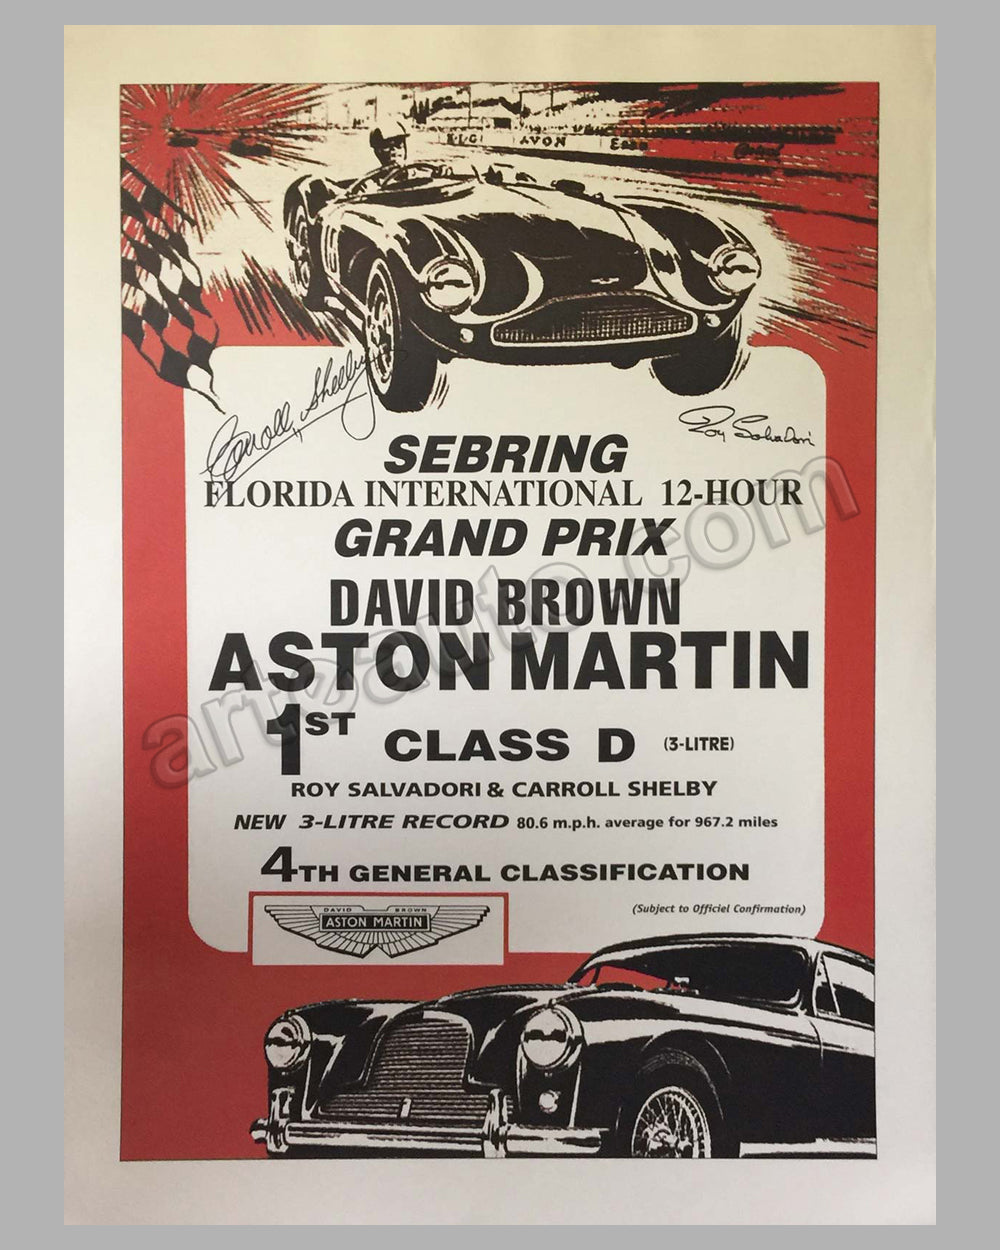 Aston Martin factory victory poster for the 12 hours of Sebring in 1956, Autographed Carroll Shelby and Roy Salvador